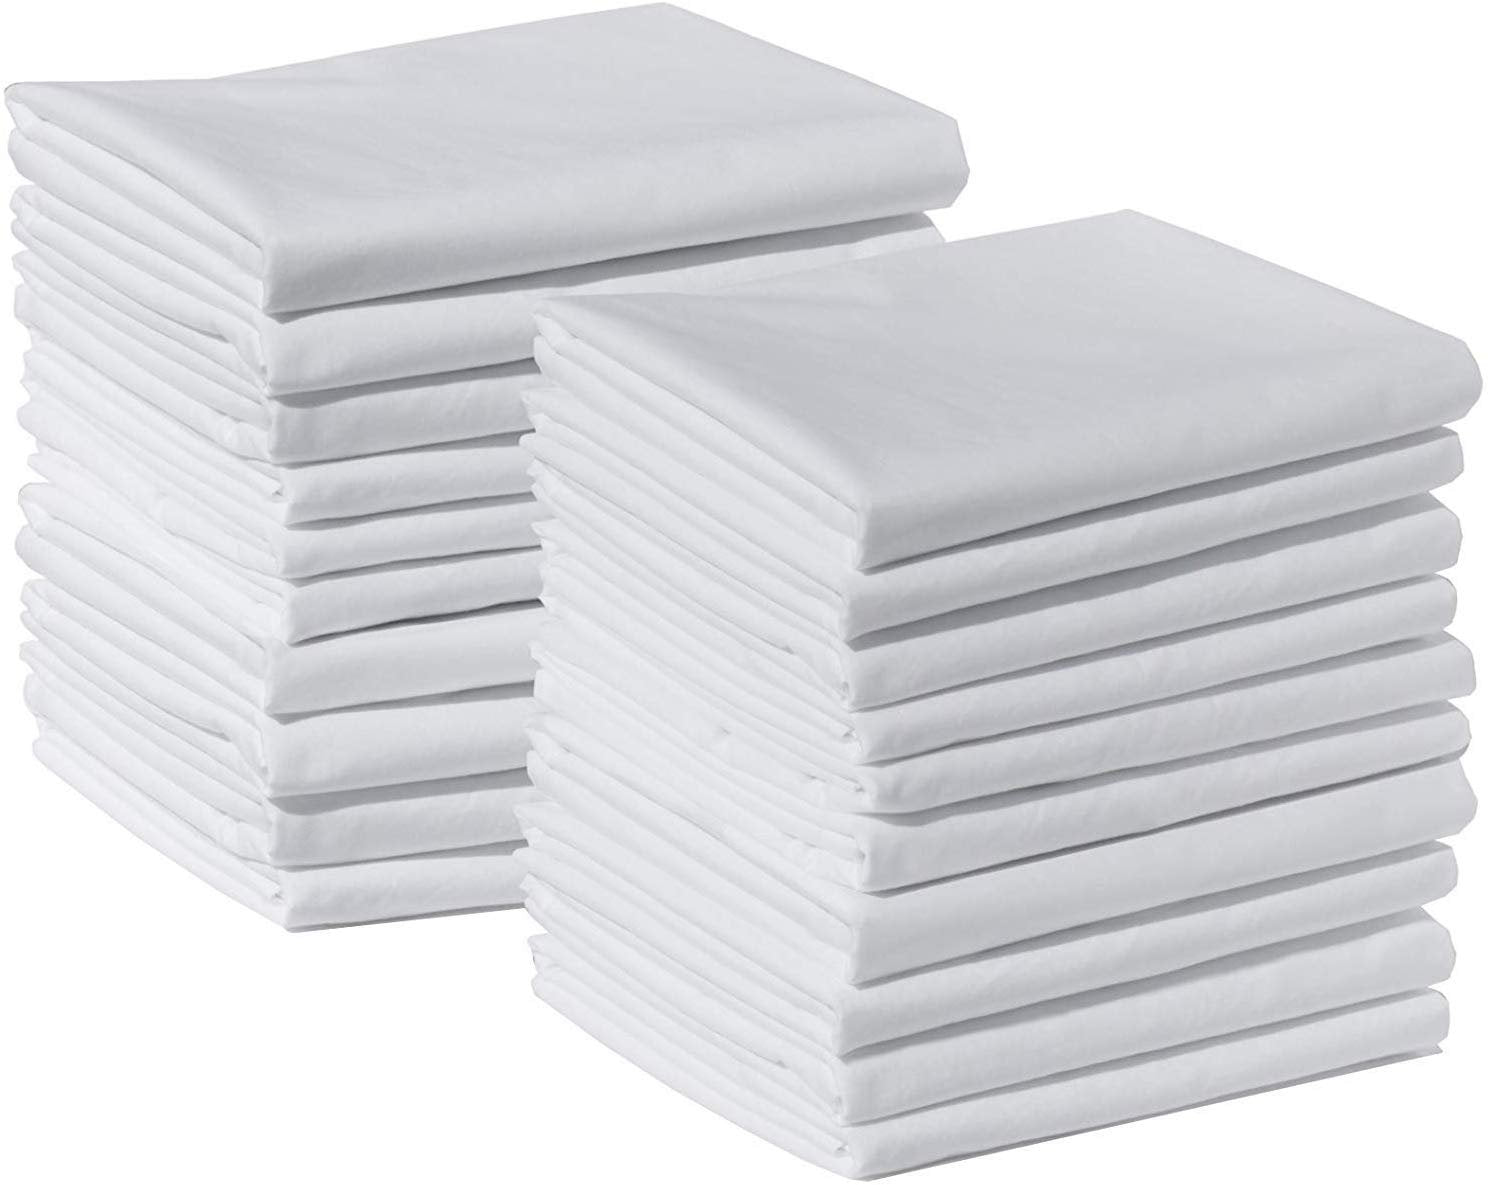 Wholesale Box of 140 Standard Size Microfiber Pillowcases